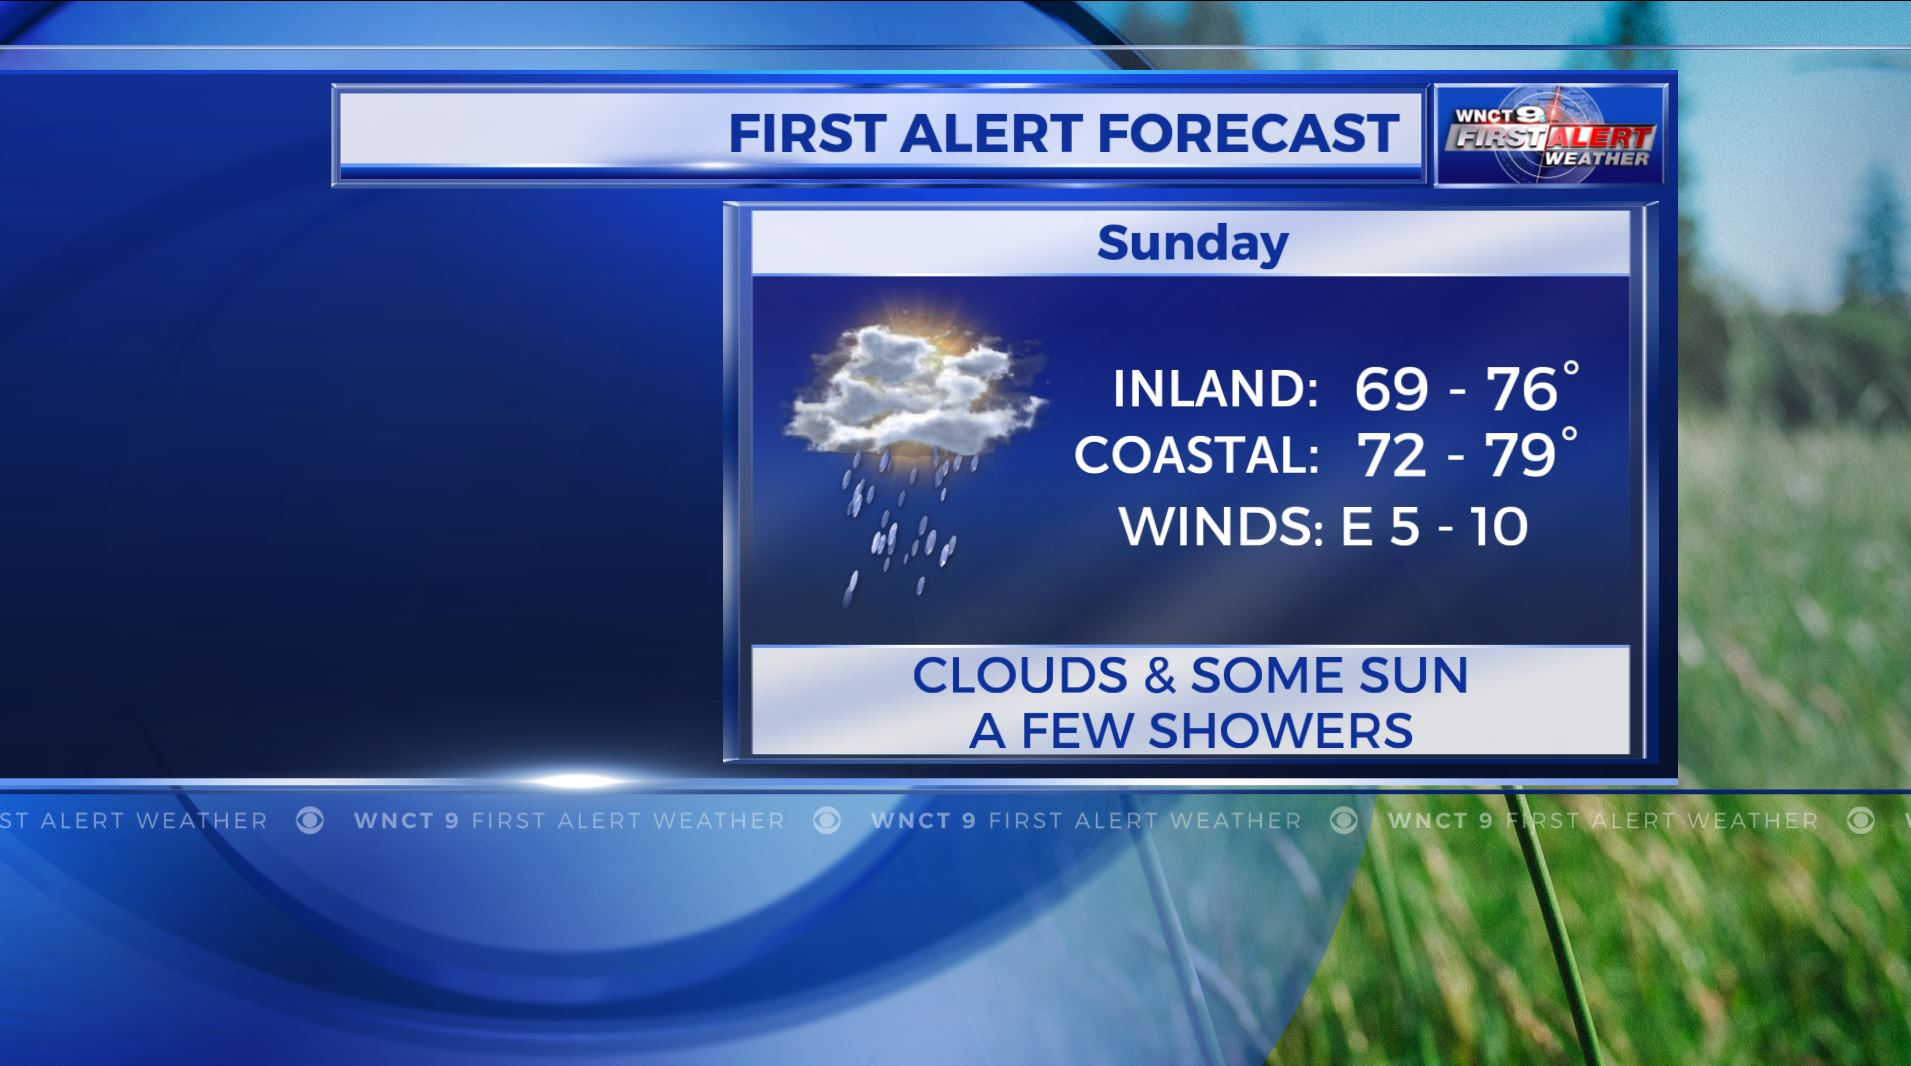 Monday forecast: Scattered storms to begin the work week